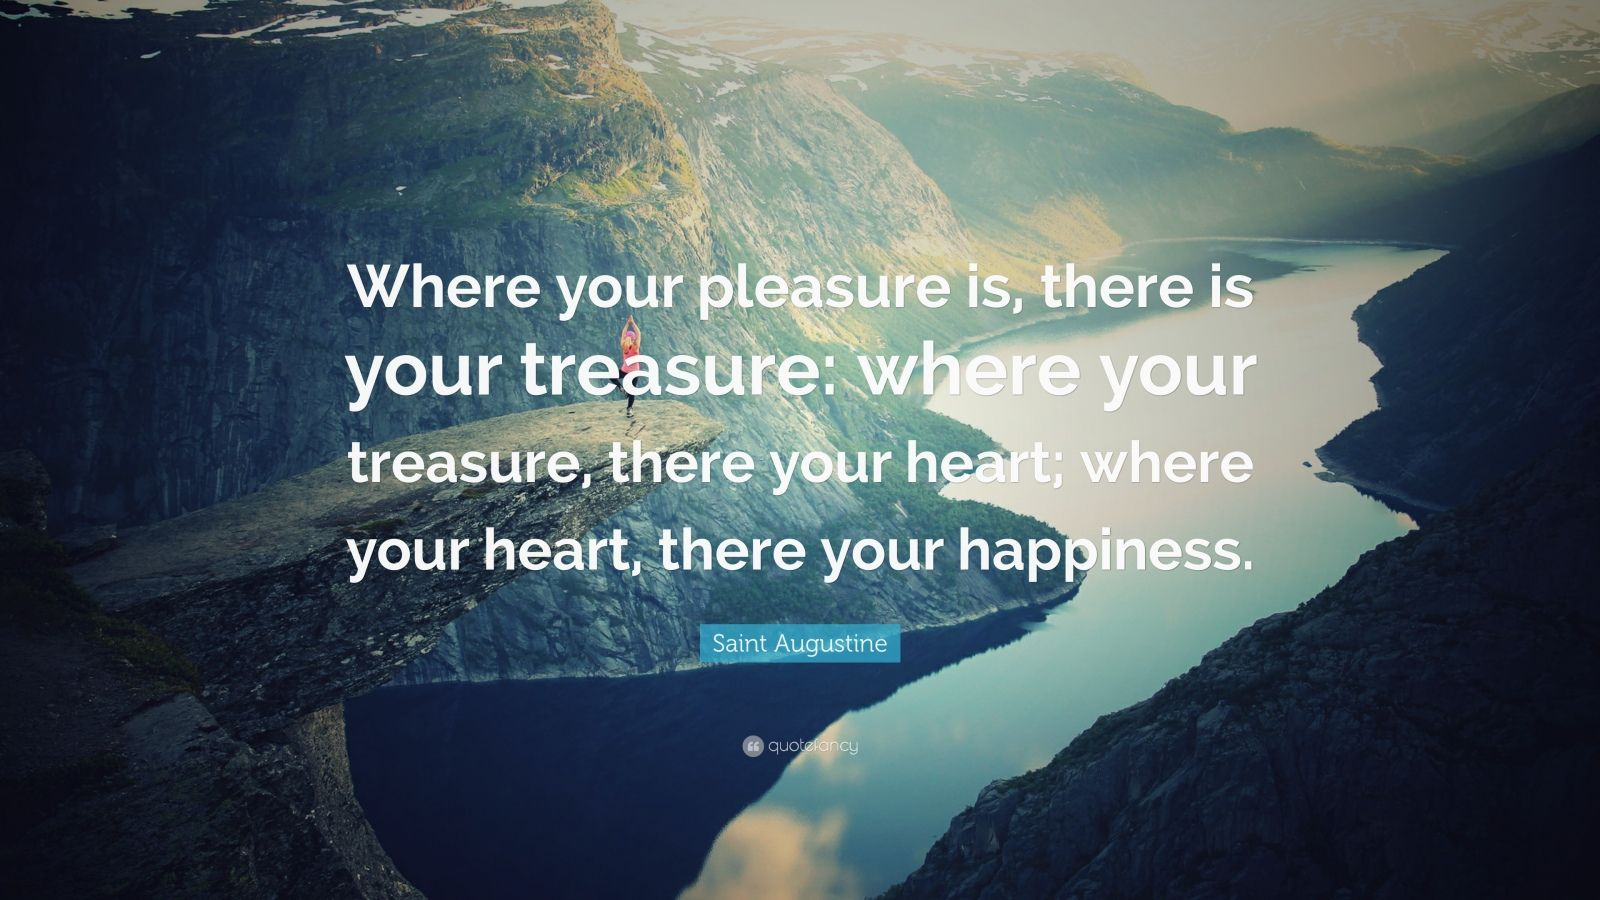 """Saint Augustine Quote: """"Where your pleasure is, there is your treasure: where your treasure, there your heart; where your heart, there your happiness."""""""